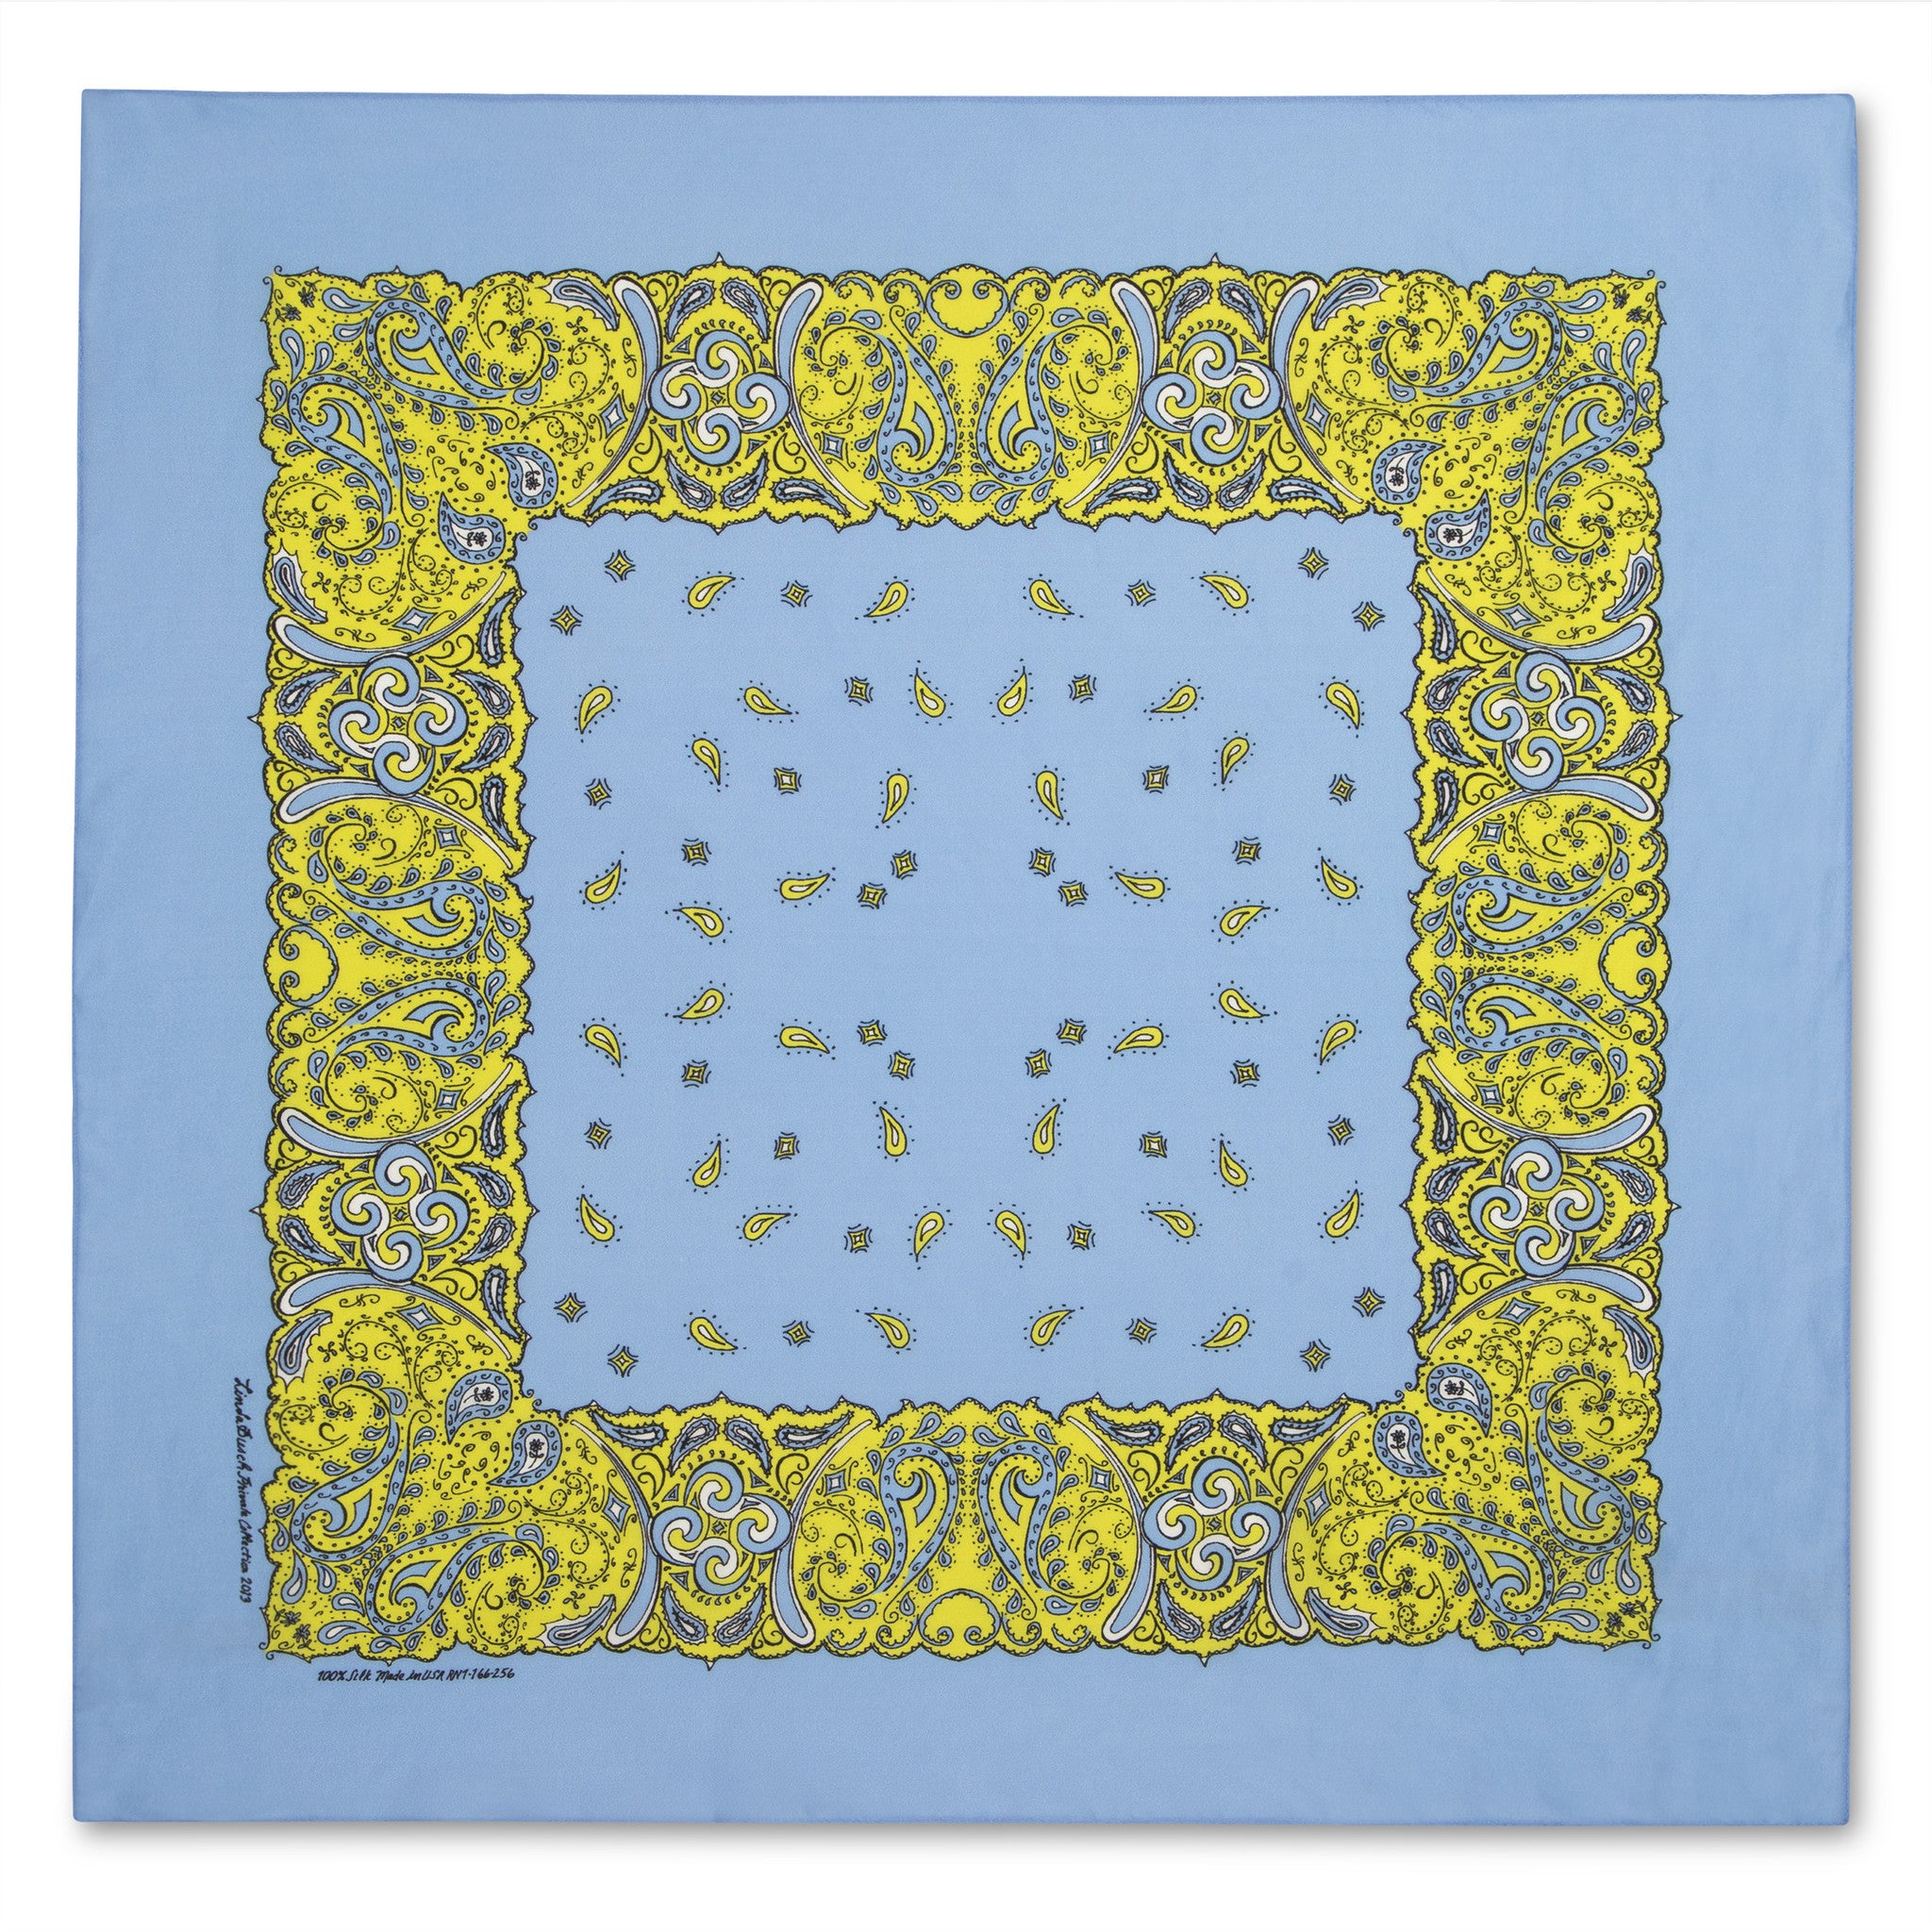 SAMPLE SALE-Silk Bandanna in Cornflower Blue, Sulfur Spring, Black and White